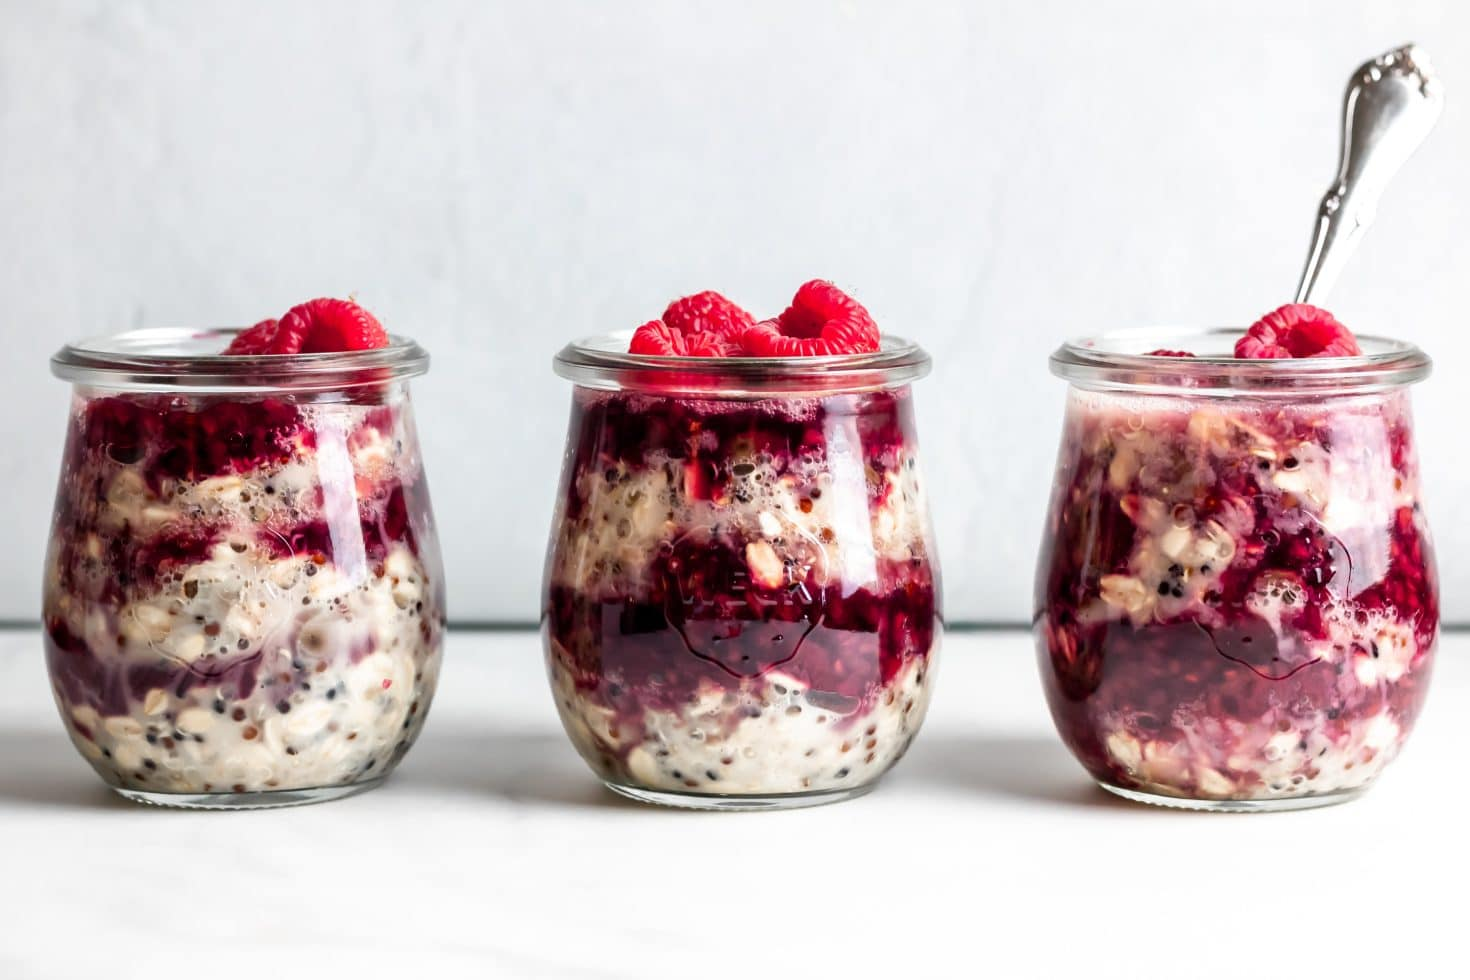 three glass jars of chocolate and raspberry quinoa overnight oats, one with a silver spoon